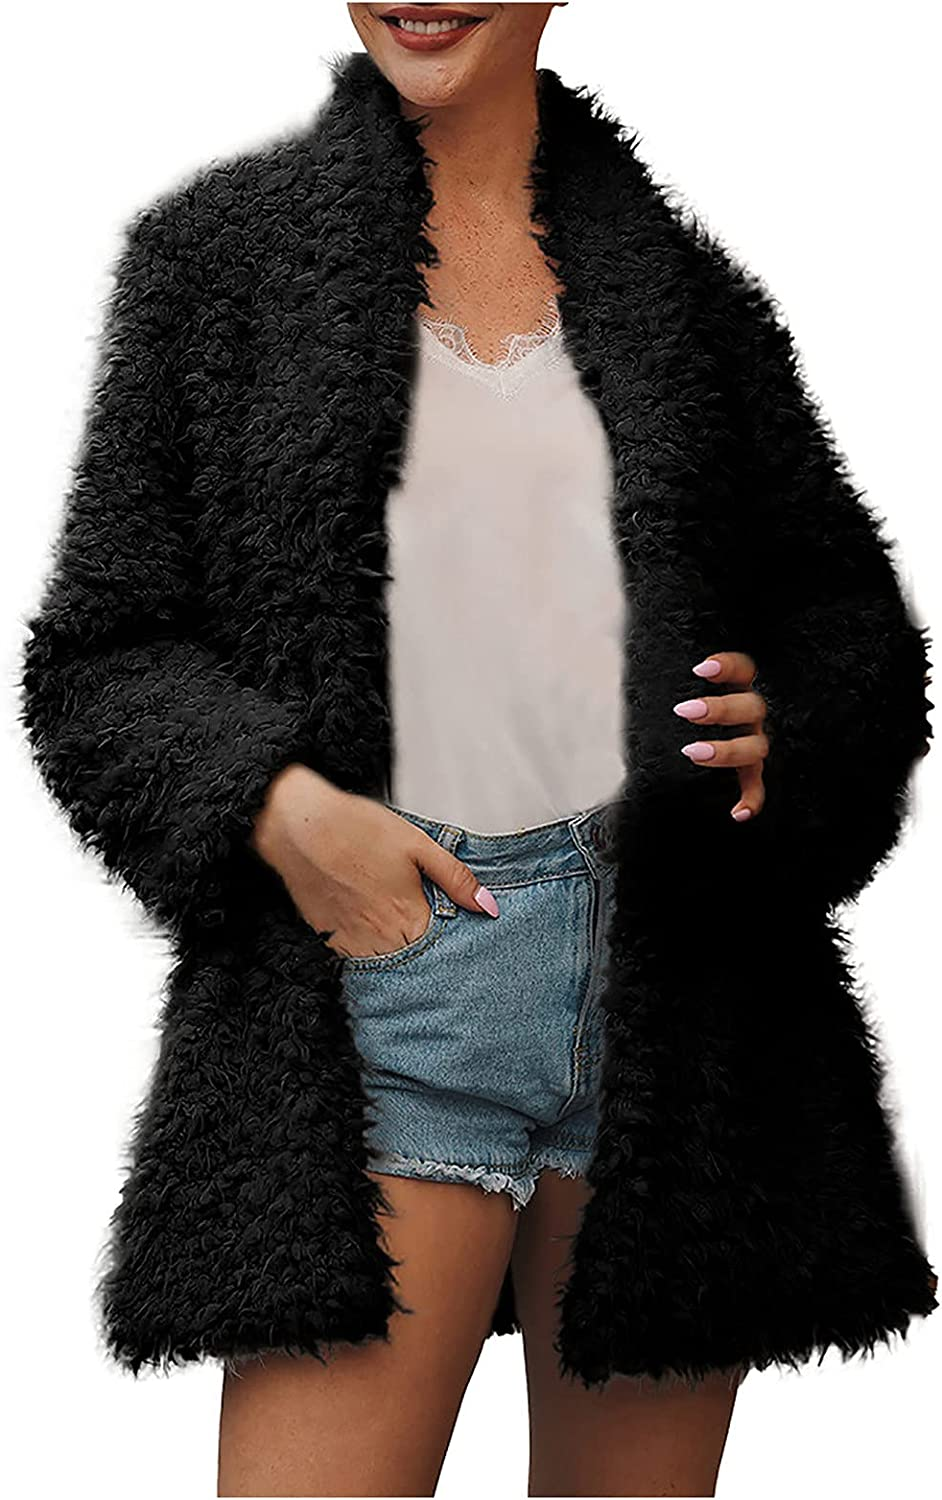 Euone_Clothes Coats for Women, Womens Ladies Warm Faux Fur' Coat Jacket Solid Turn Down Collar Outerwear